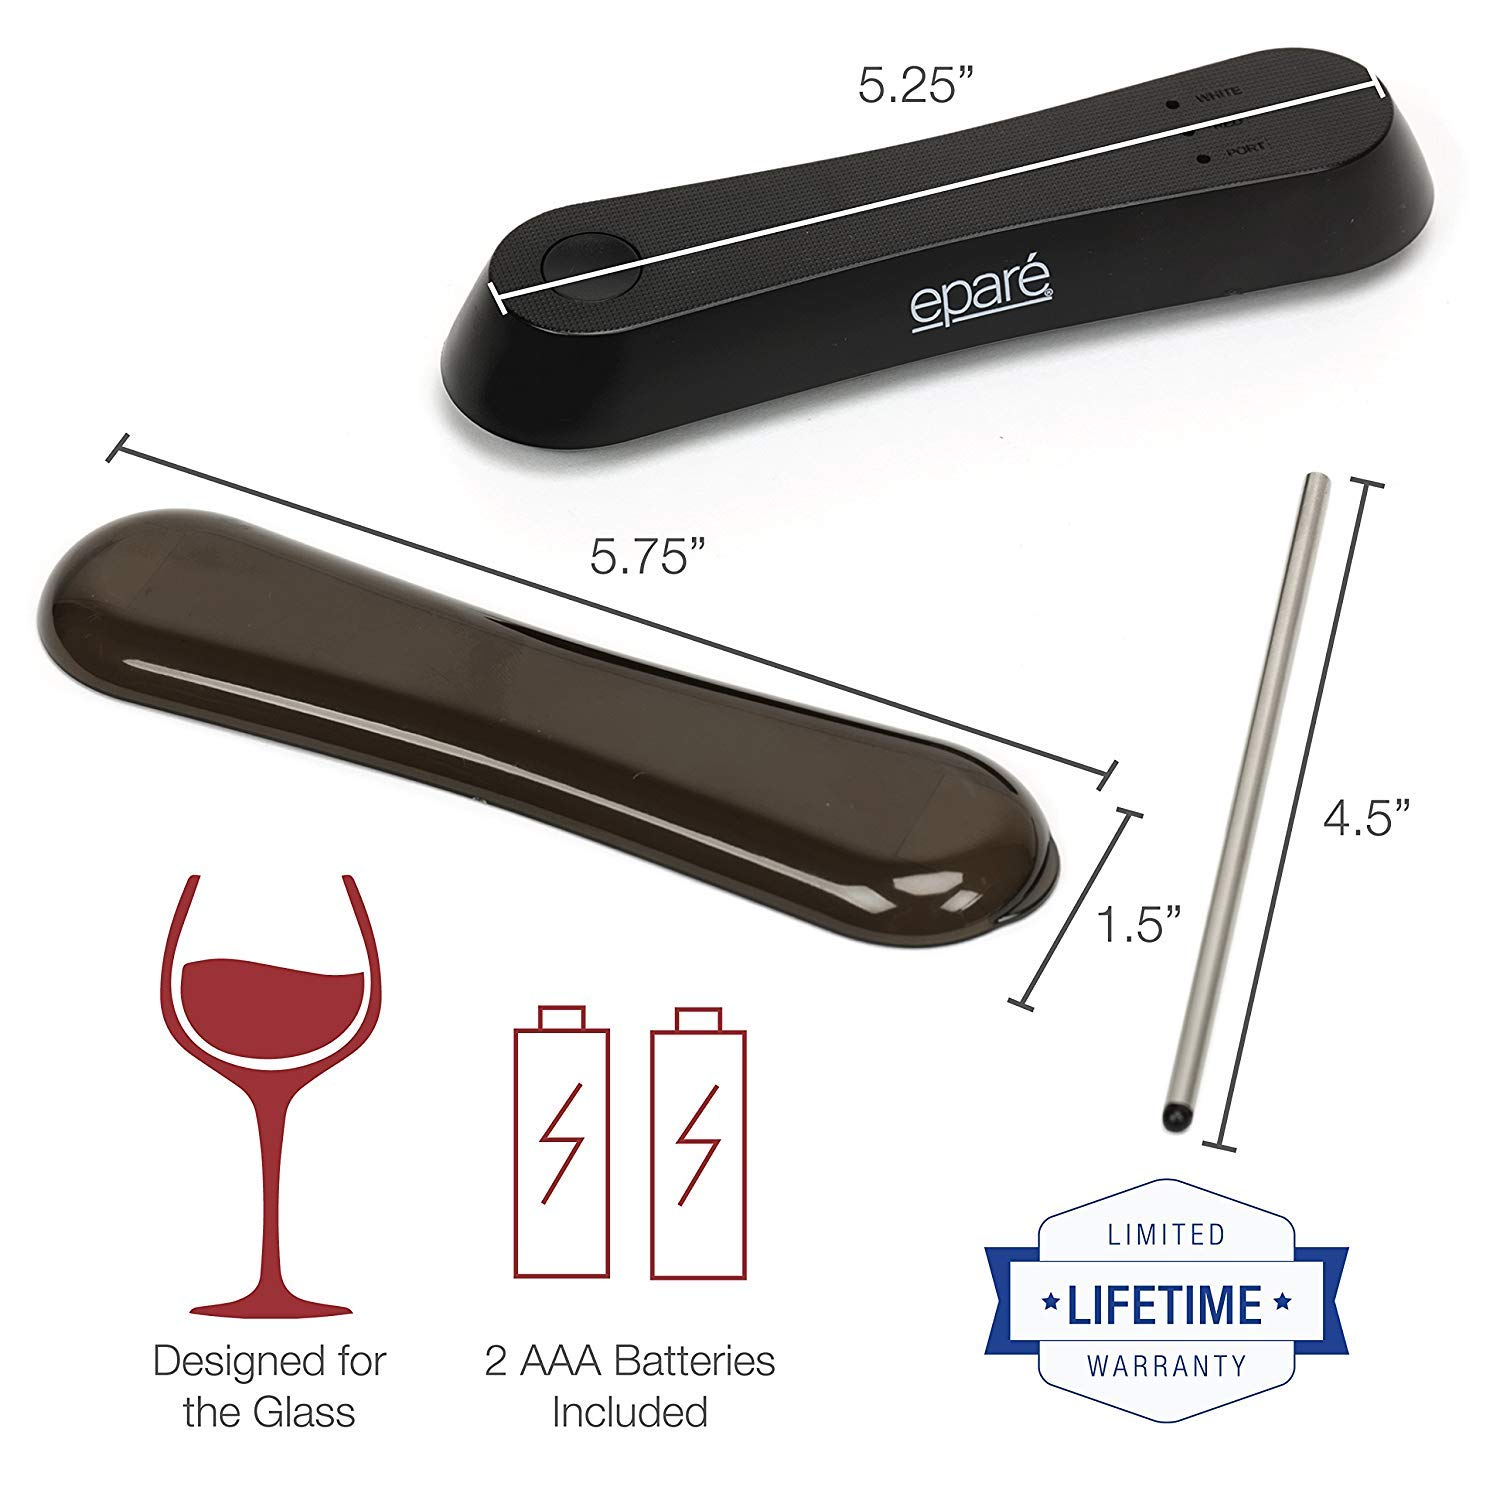 Best Electric Wine Accessories eparé EPWE02 Modes For Red White Port Wine Lovers Travel Wand Decanter Epar/é Pocket Wine Aerator